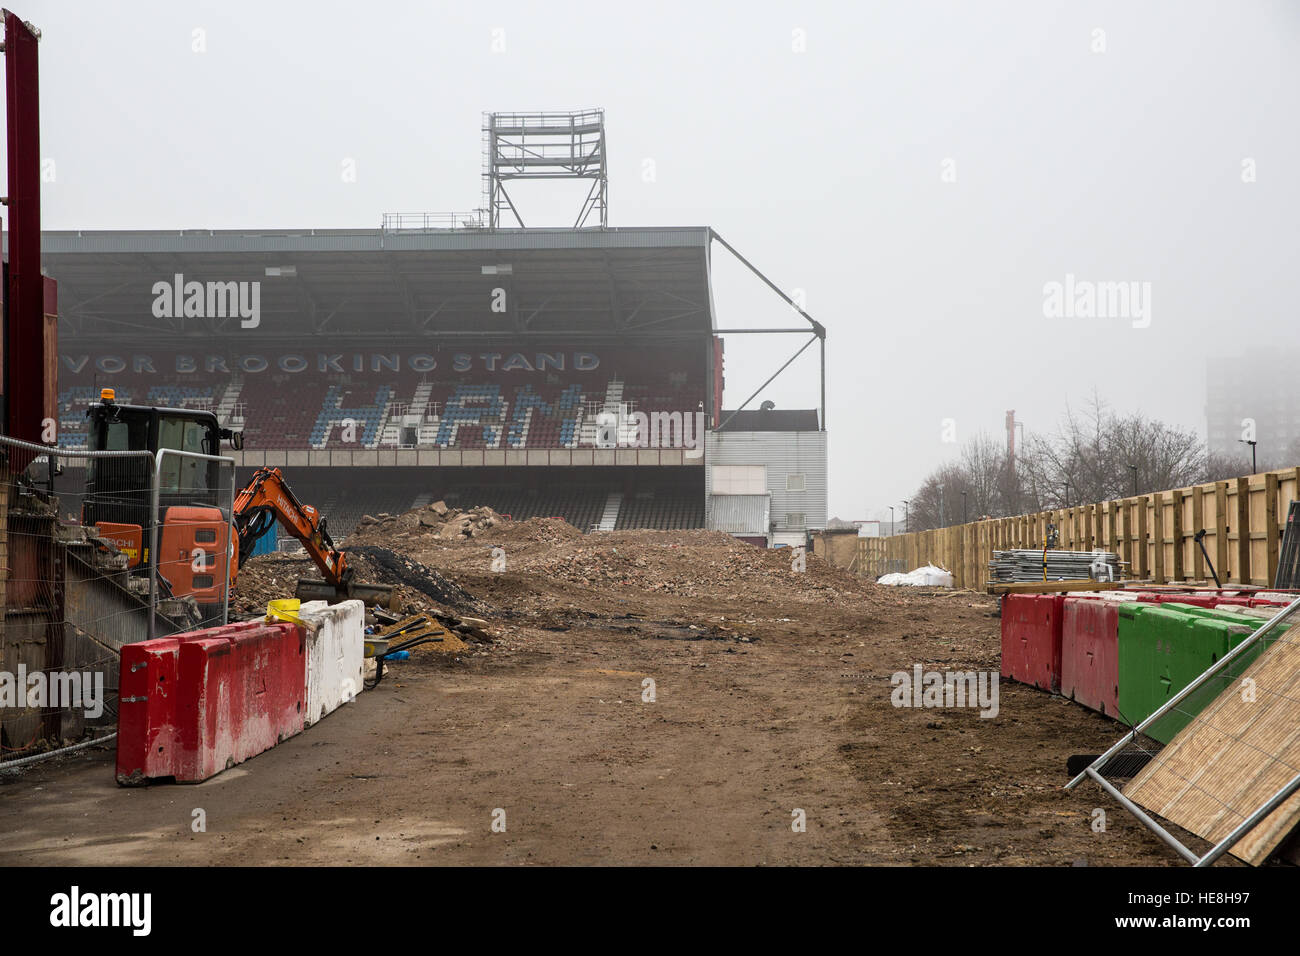 London, UK. 17th December, 2016. The East Stand at West Ham United's former Boleyn Ground in Upton Park has - Stock Image